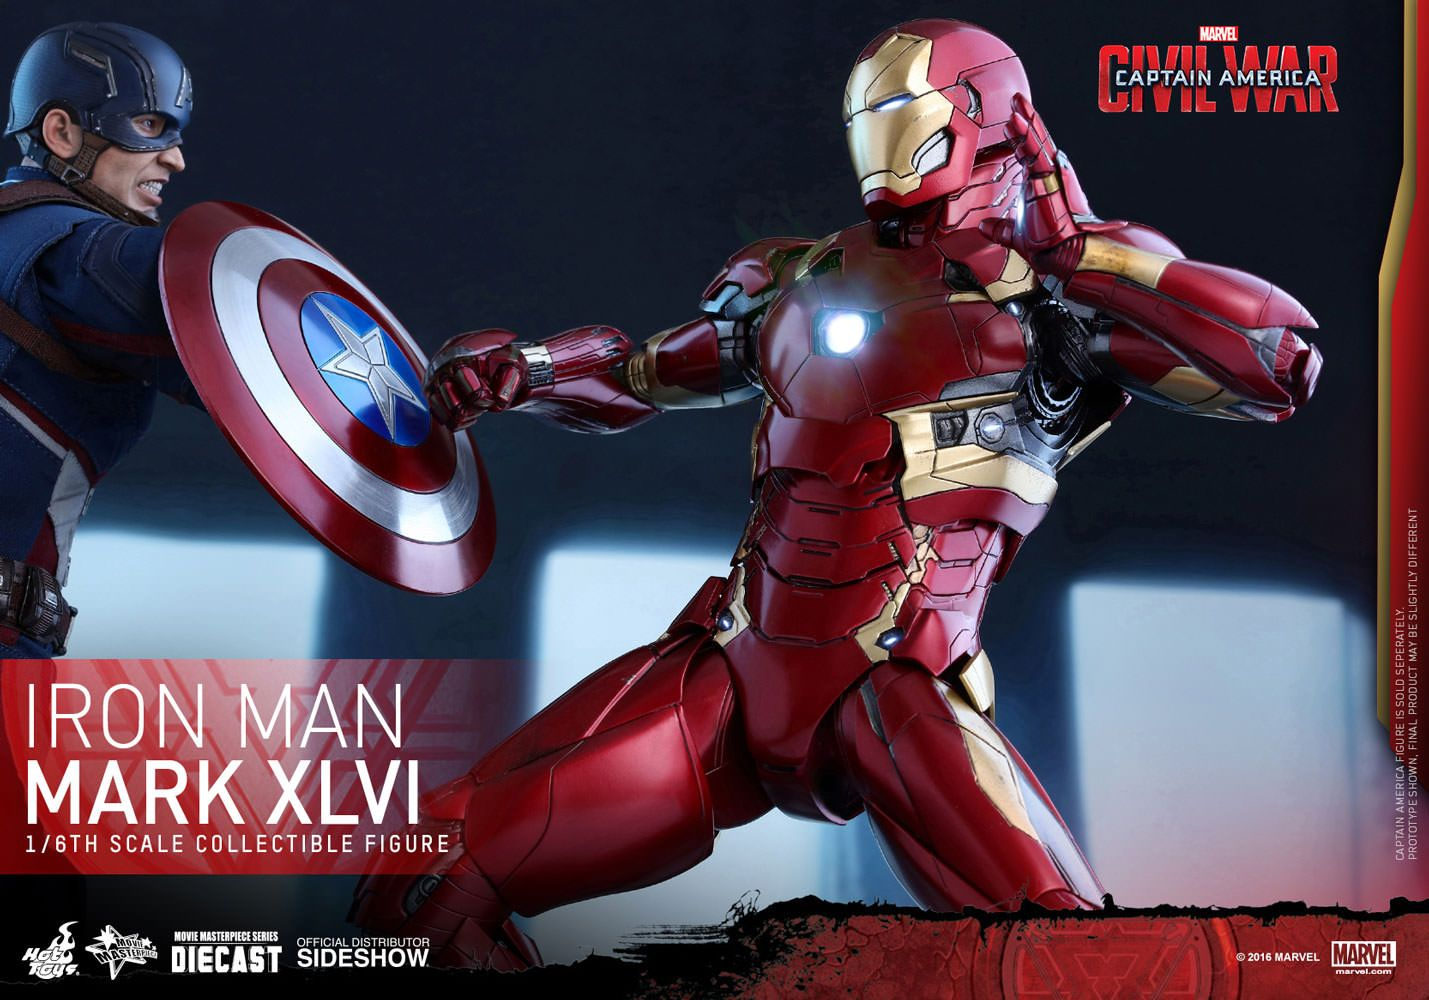 Hot Toys Iron Man Mark Xlvi Sixth Scale Figure With Images